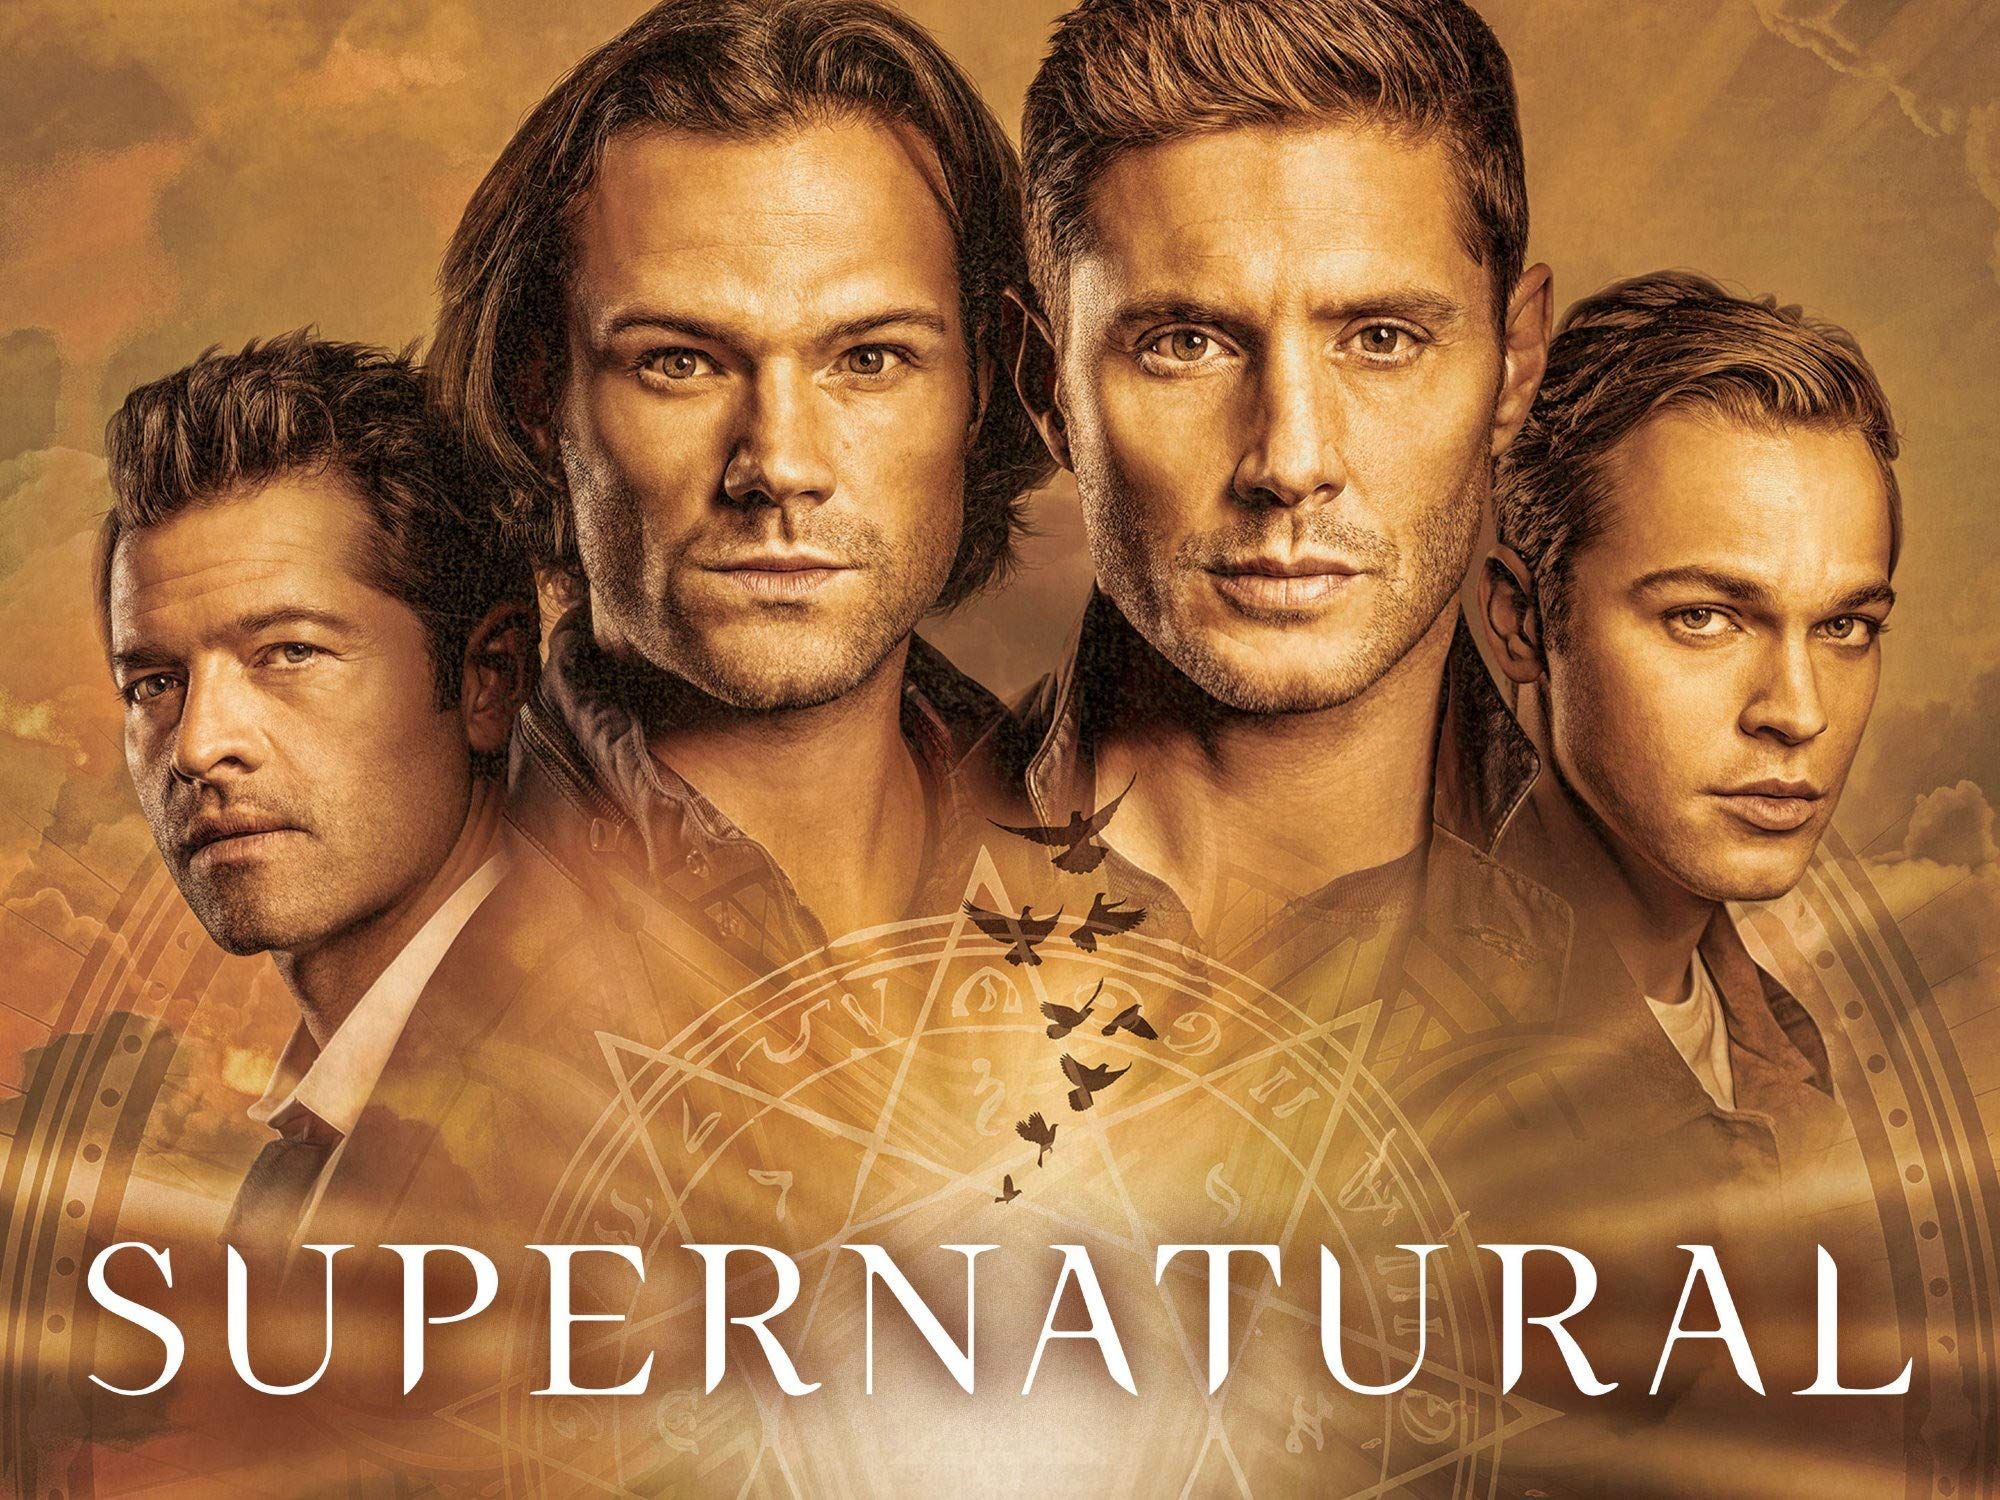 Supernatural Season 15 Episode 15 Subtitle (English Srt) Download